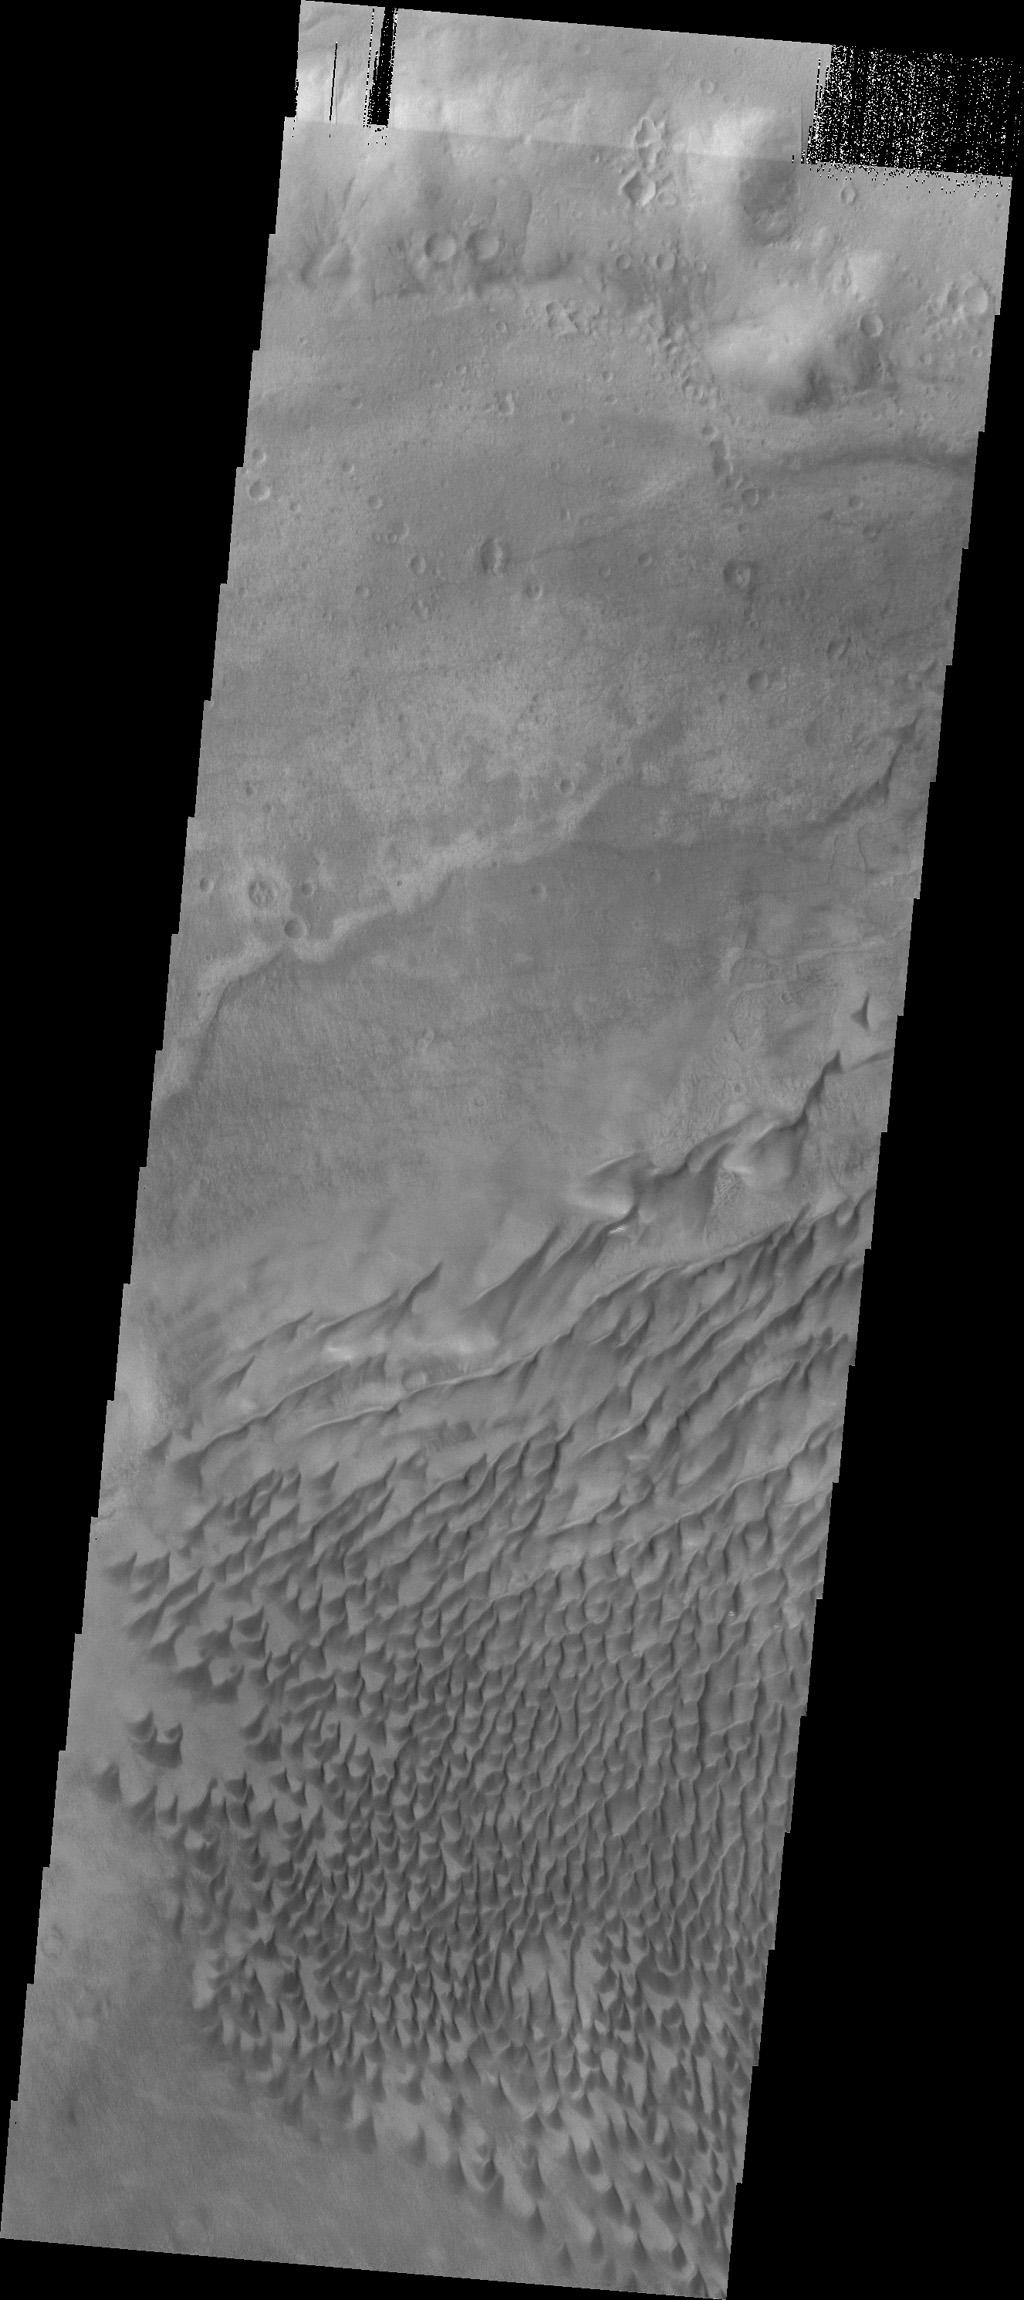 The sand dunes in this image from NASA's Mars Odyssey are located on the floor of Russell Crater.